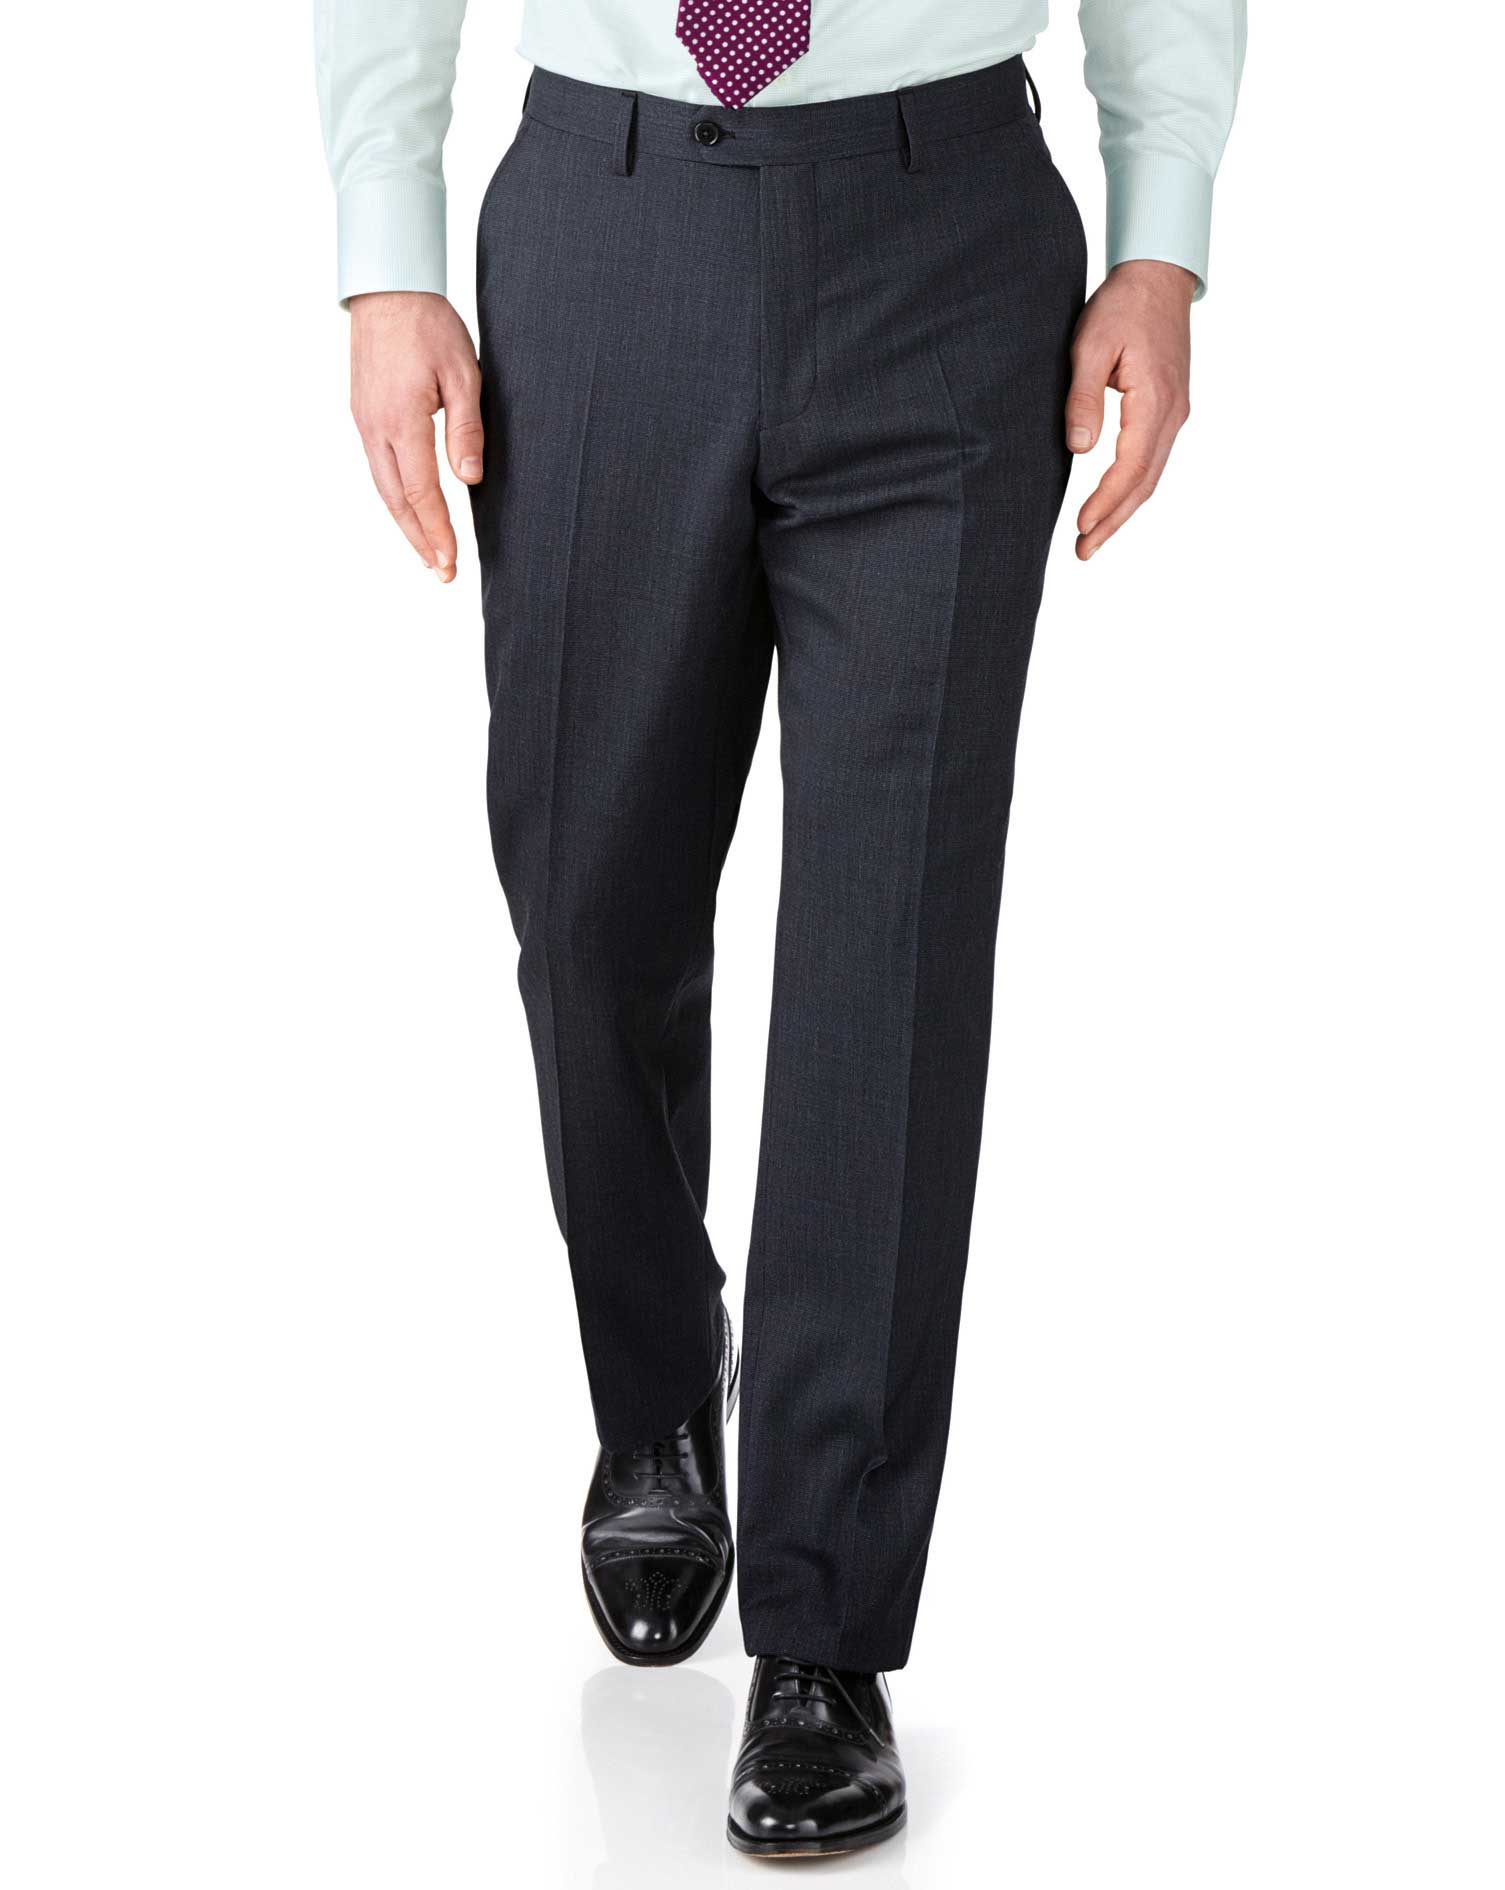 Navy Slim Fit End-On-End Business Suit Trousers Size W42 L32 by Charles Tyrwhitt